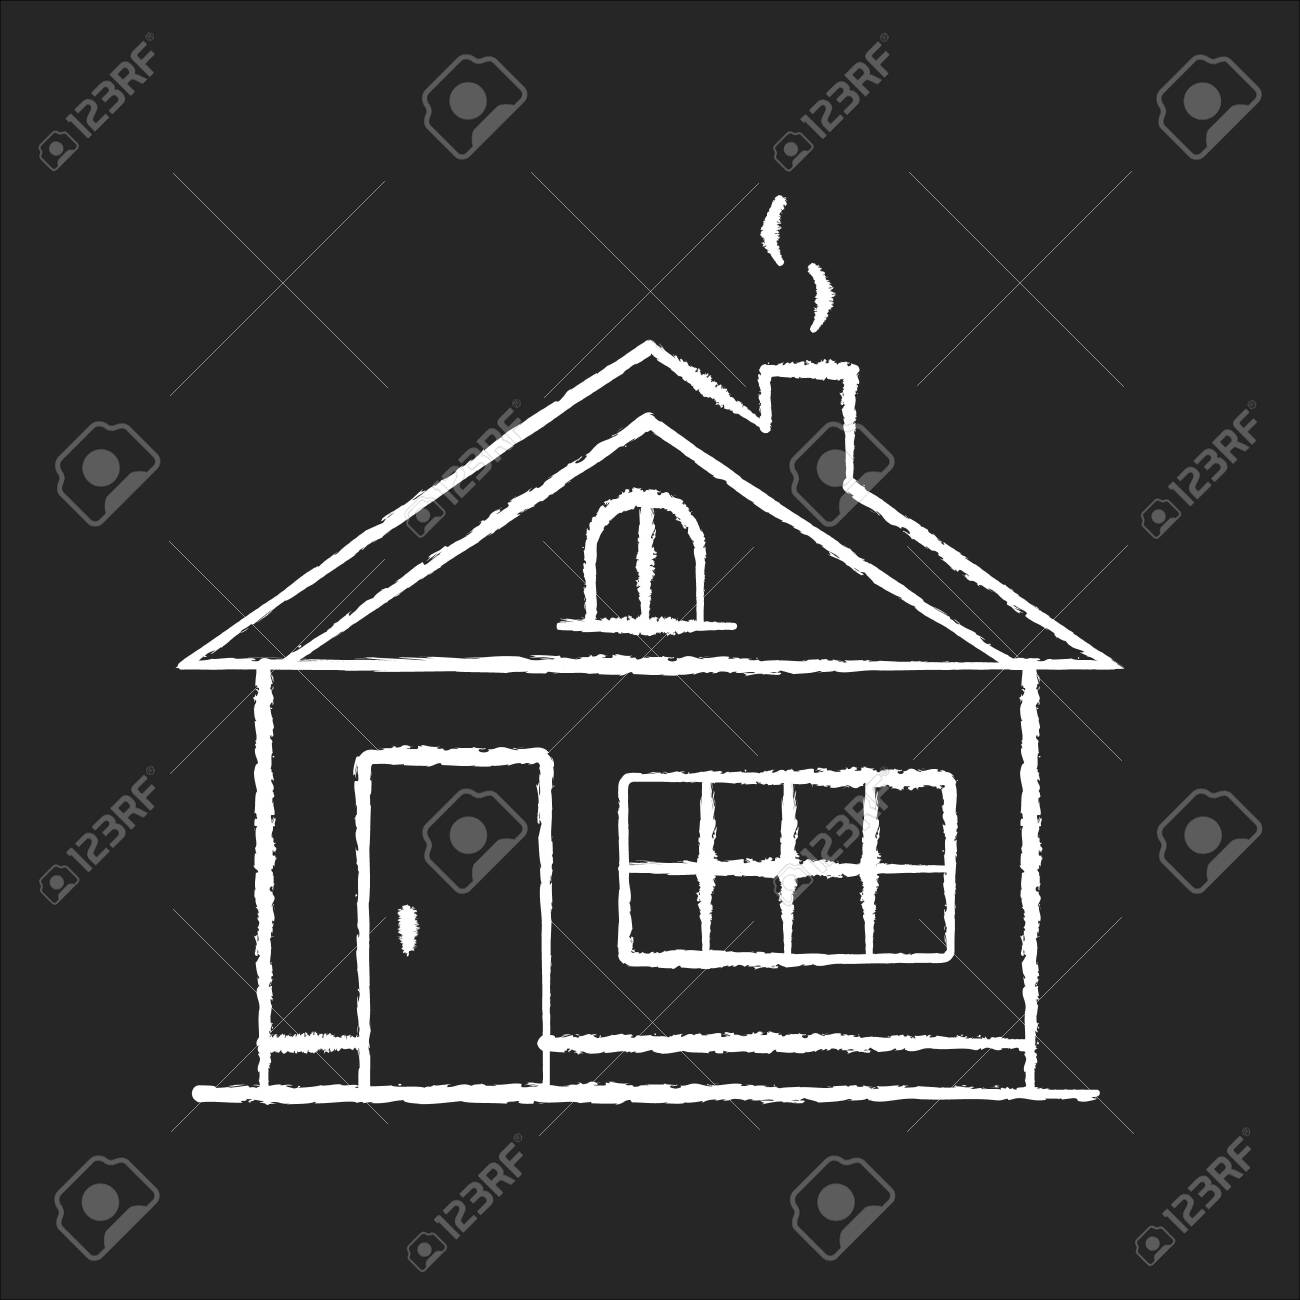 House chalk white icon on black background. Residential home exterior. Real estate for renting. Dwelling building in suburban area. Household property. Isolated vector chalkboard illustration - 145552532